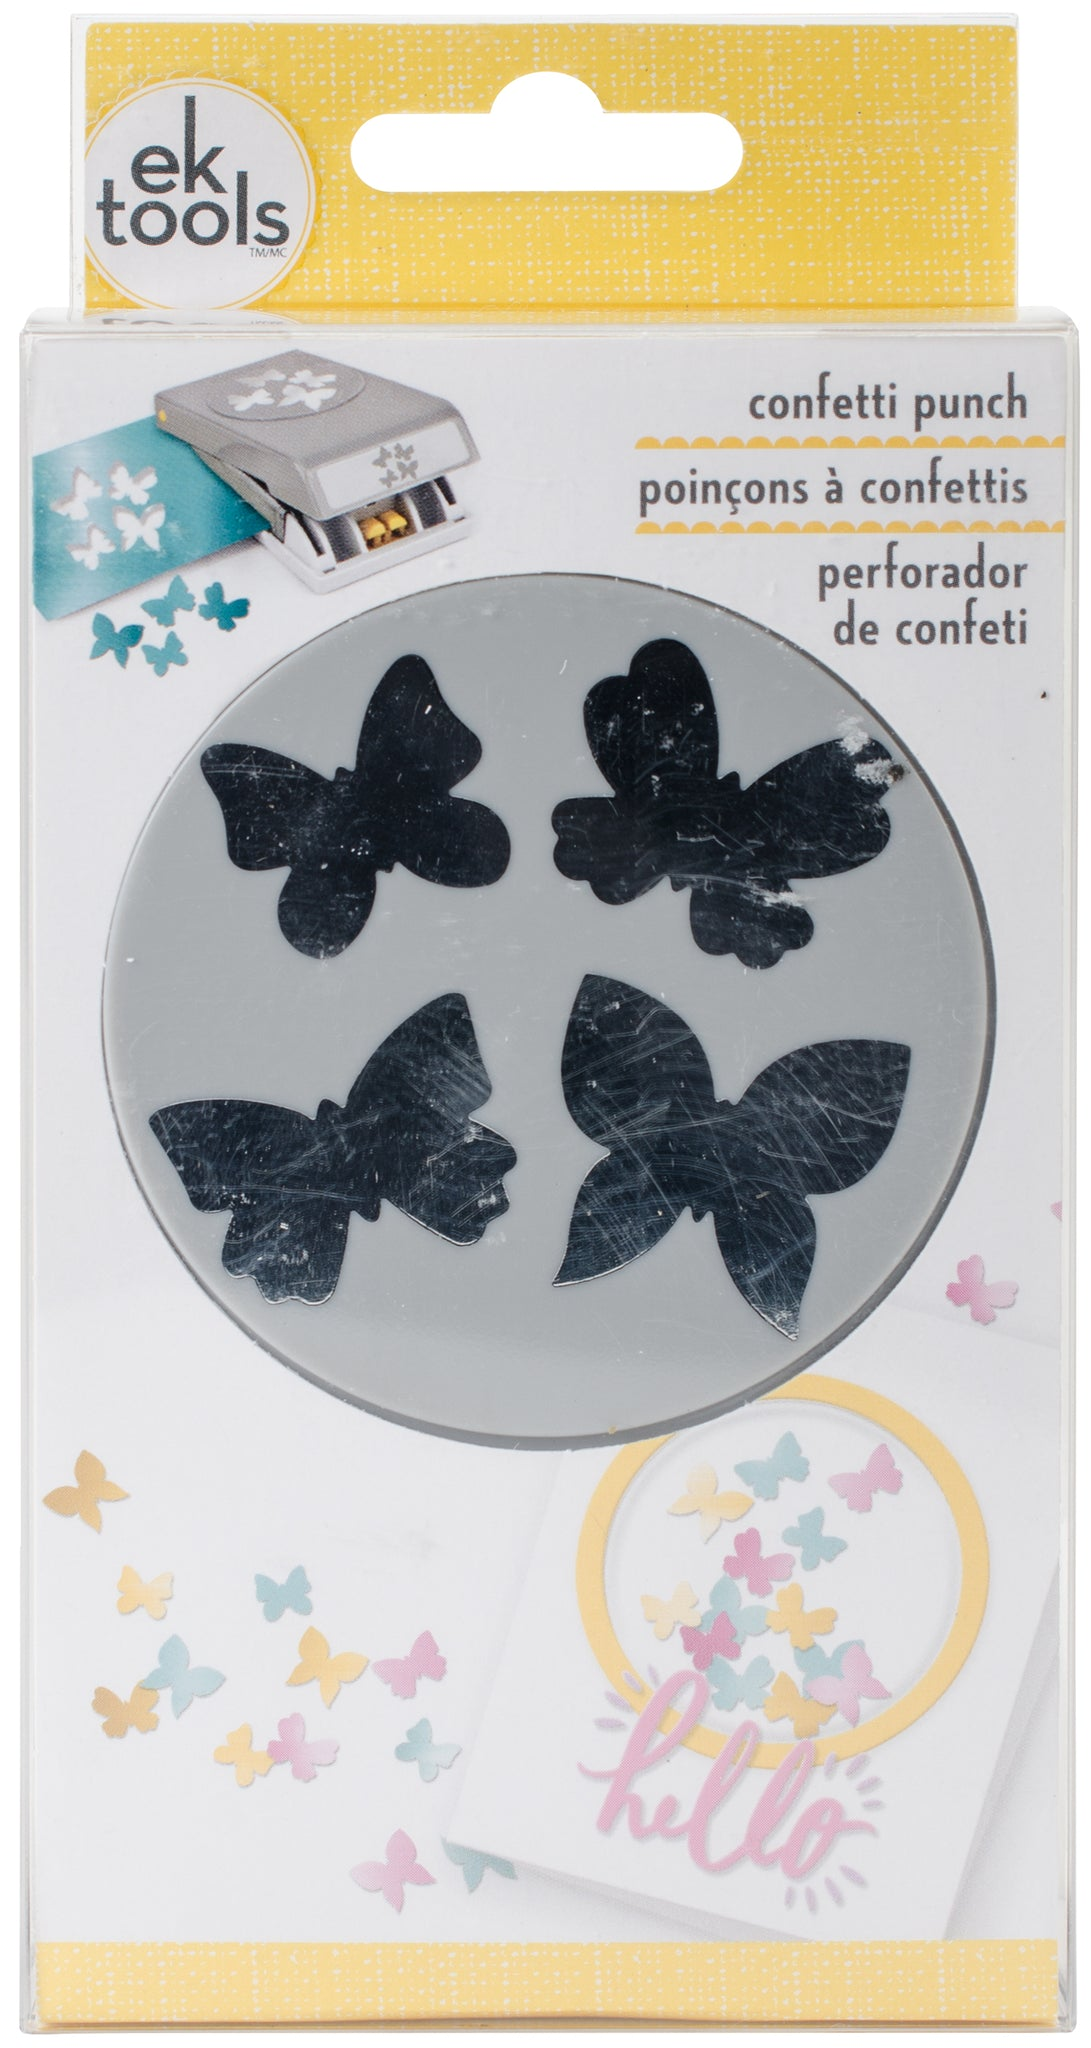 317536 Large Punch-Confetti Butterfly